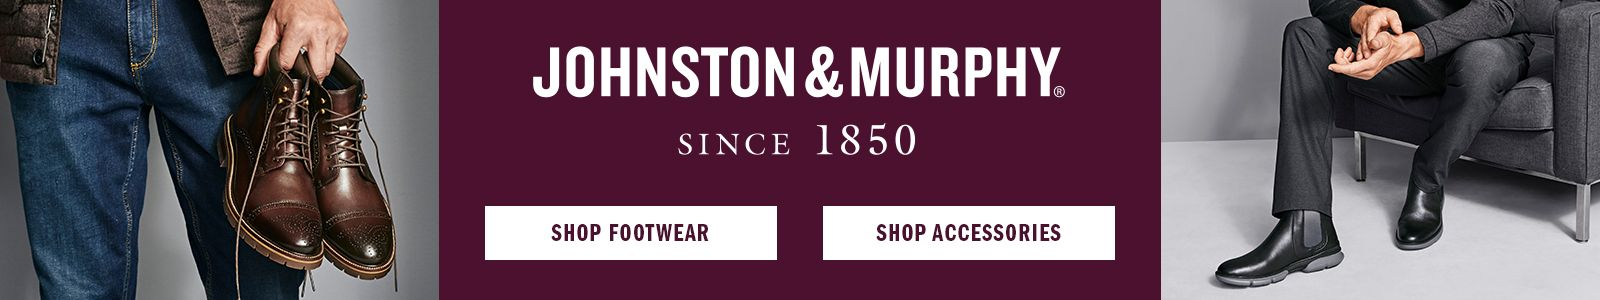 Johnston and Murphy, Since 1850